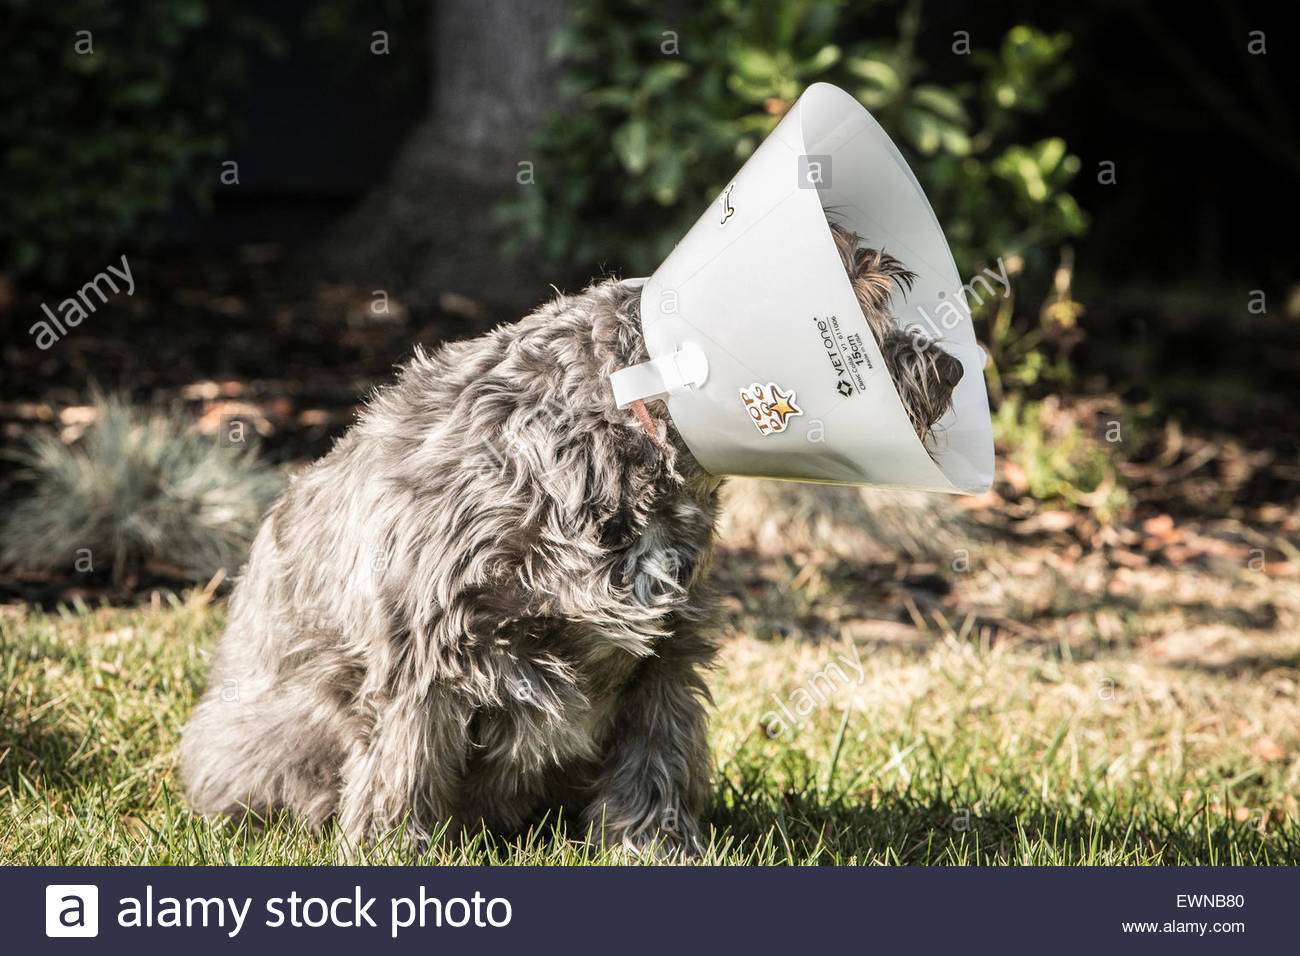 A dog wearing a cone after receiving medical care for an inflamed eye. - Stock Image